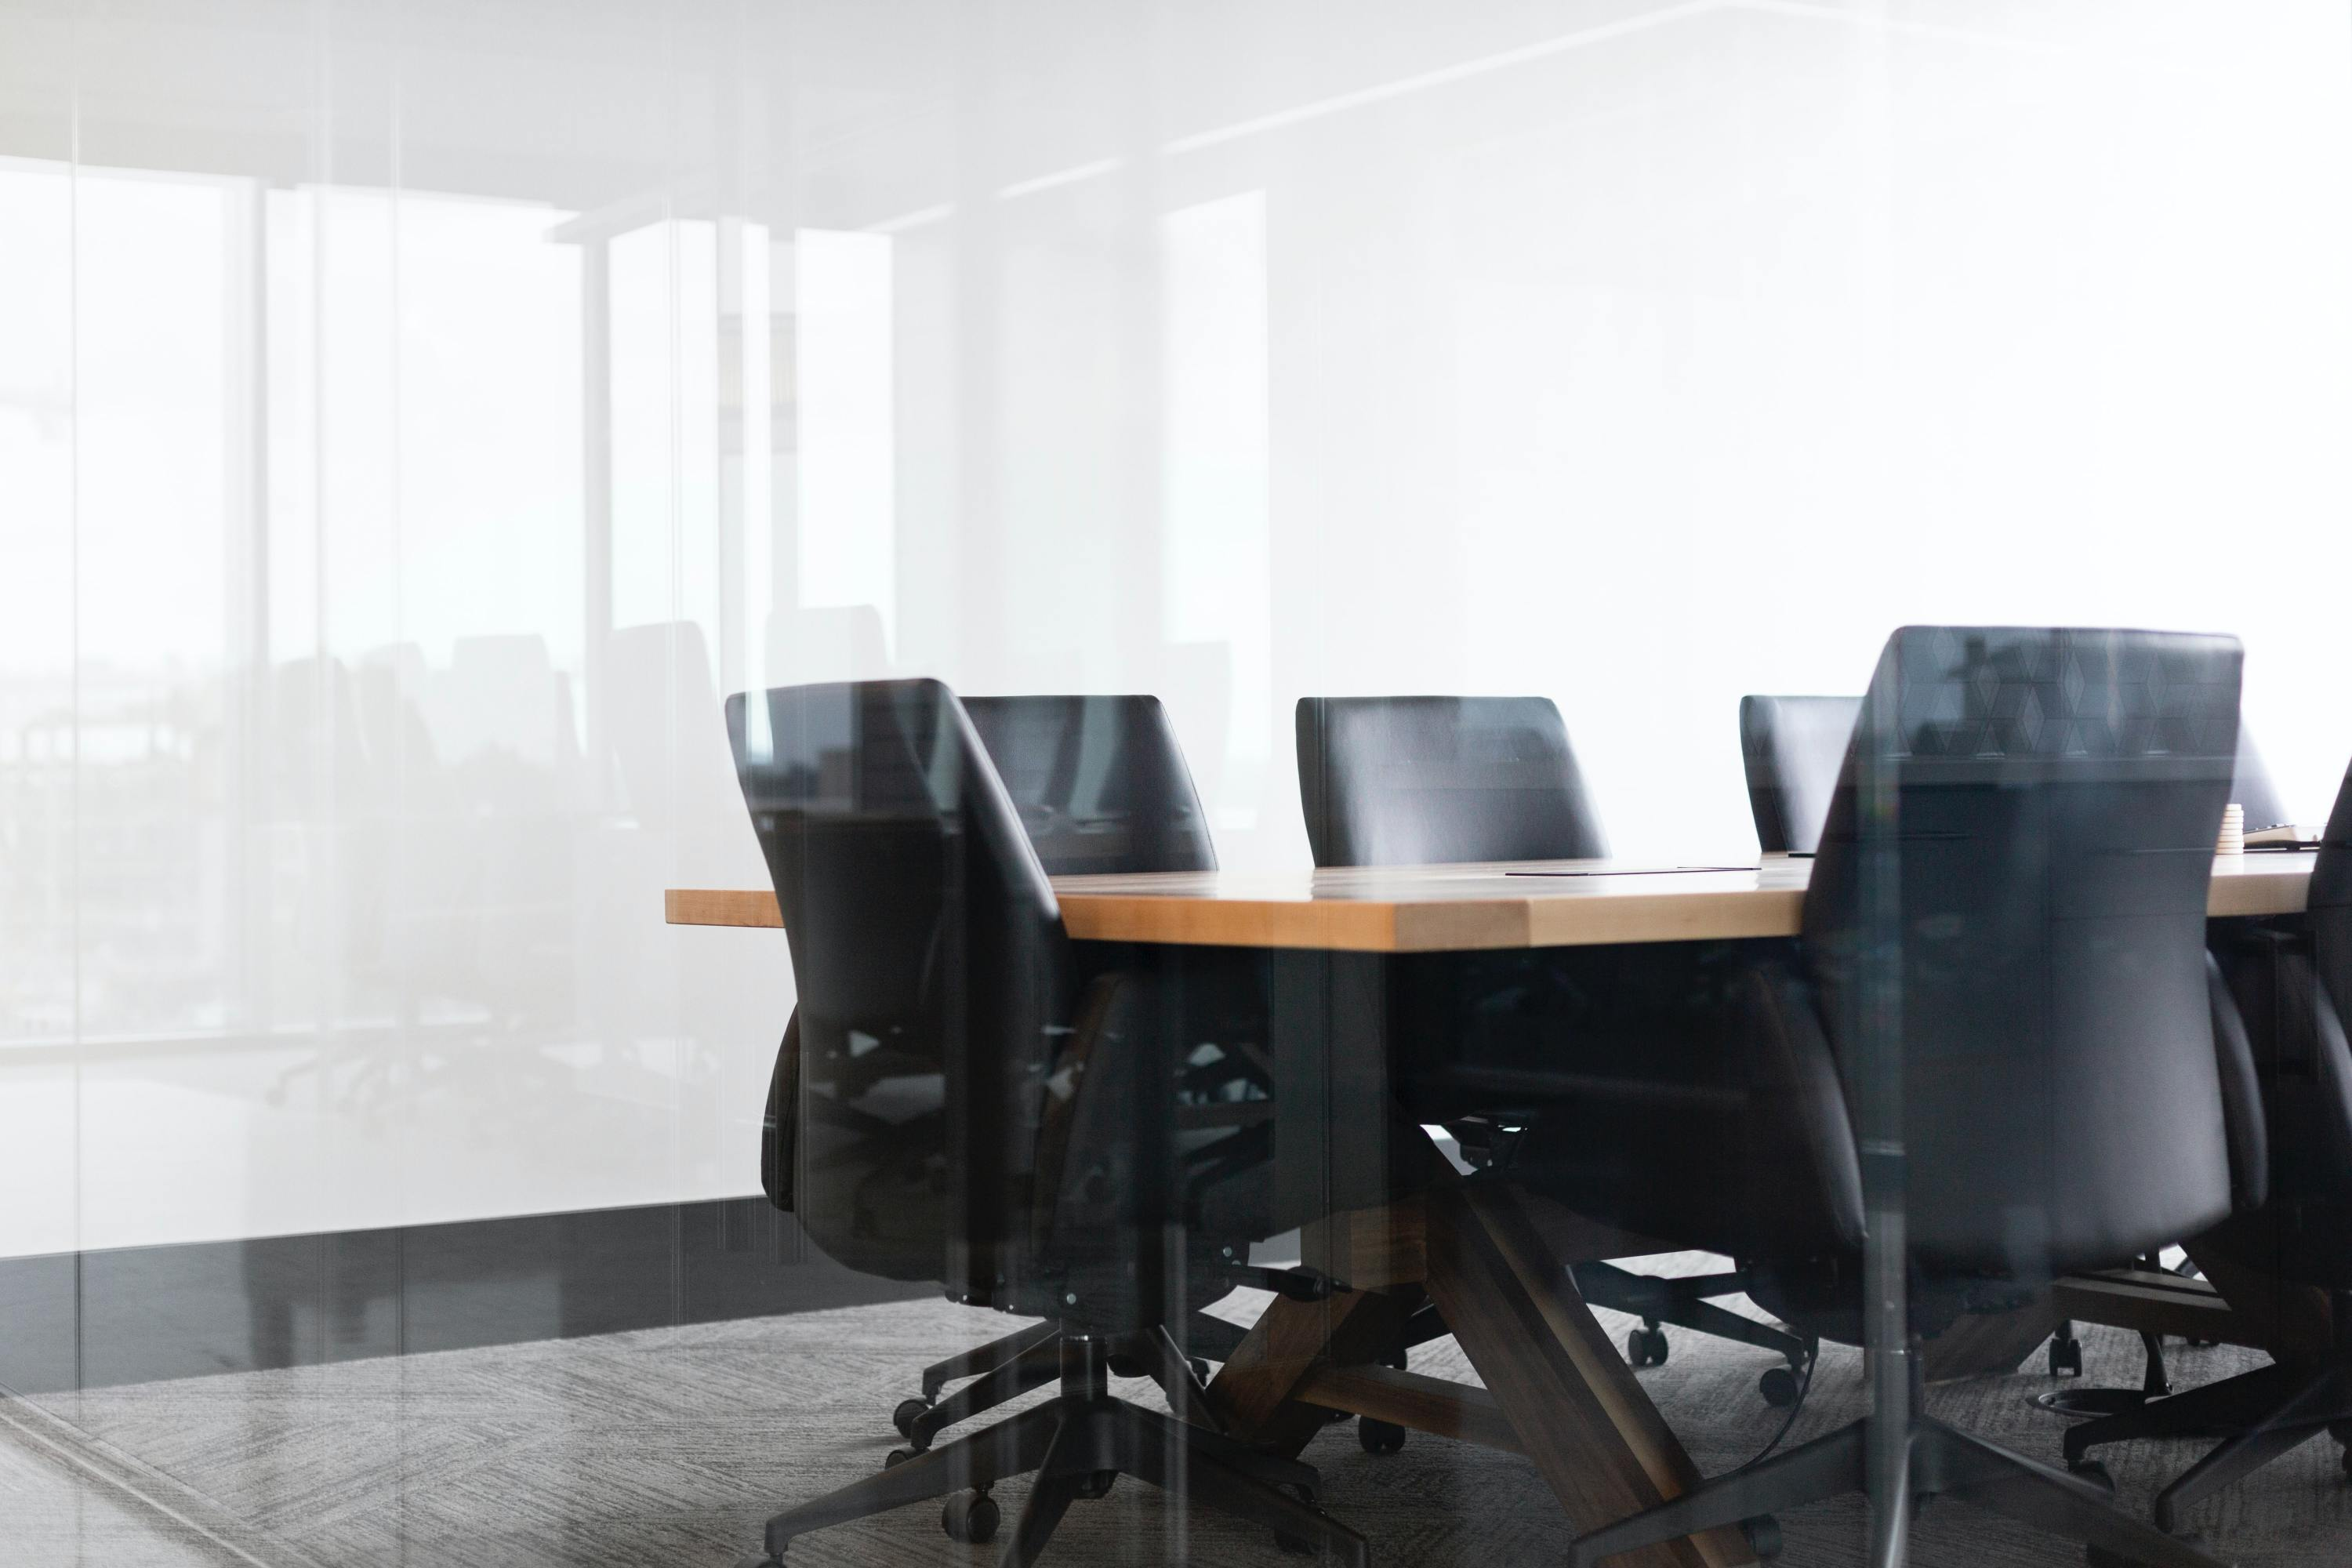 Empty Meeting Room drew-beamer-Se7vVKzYxTI-unsplash